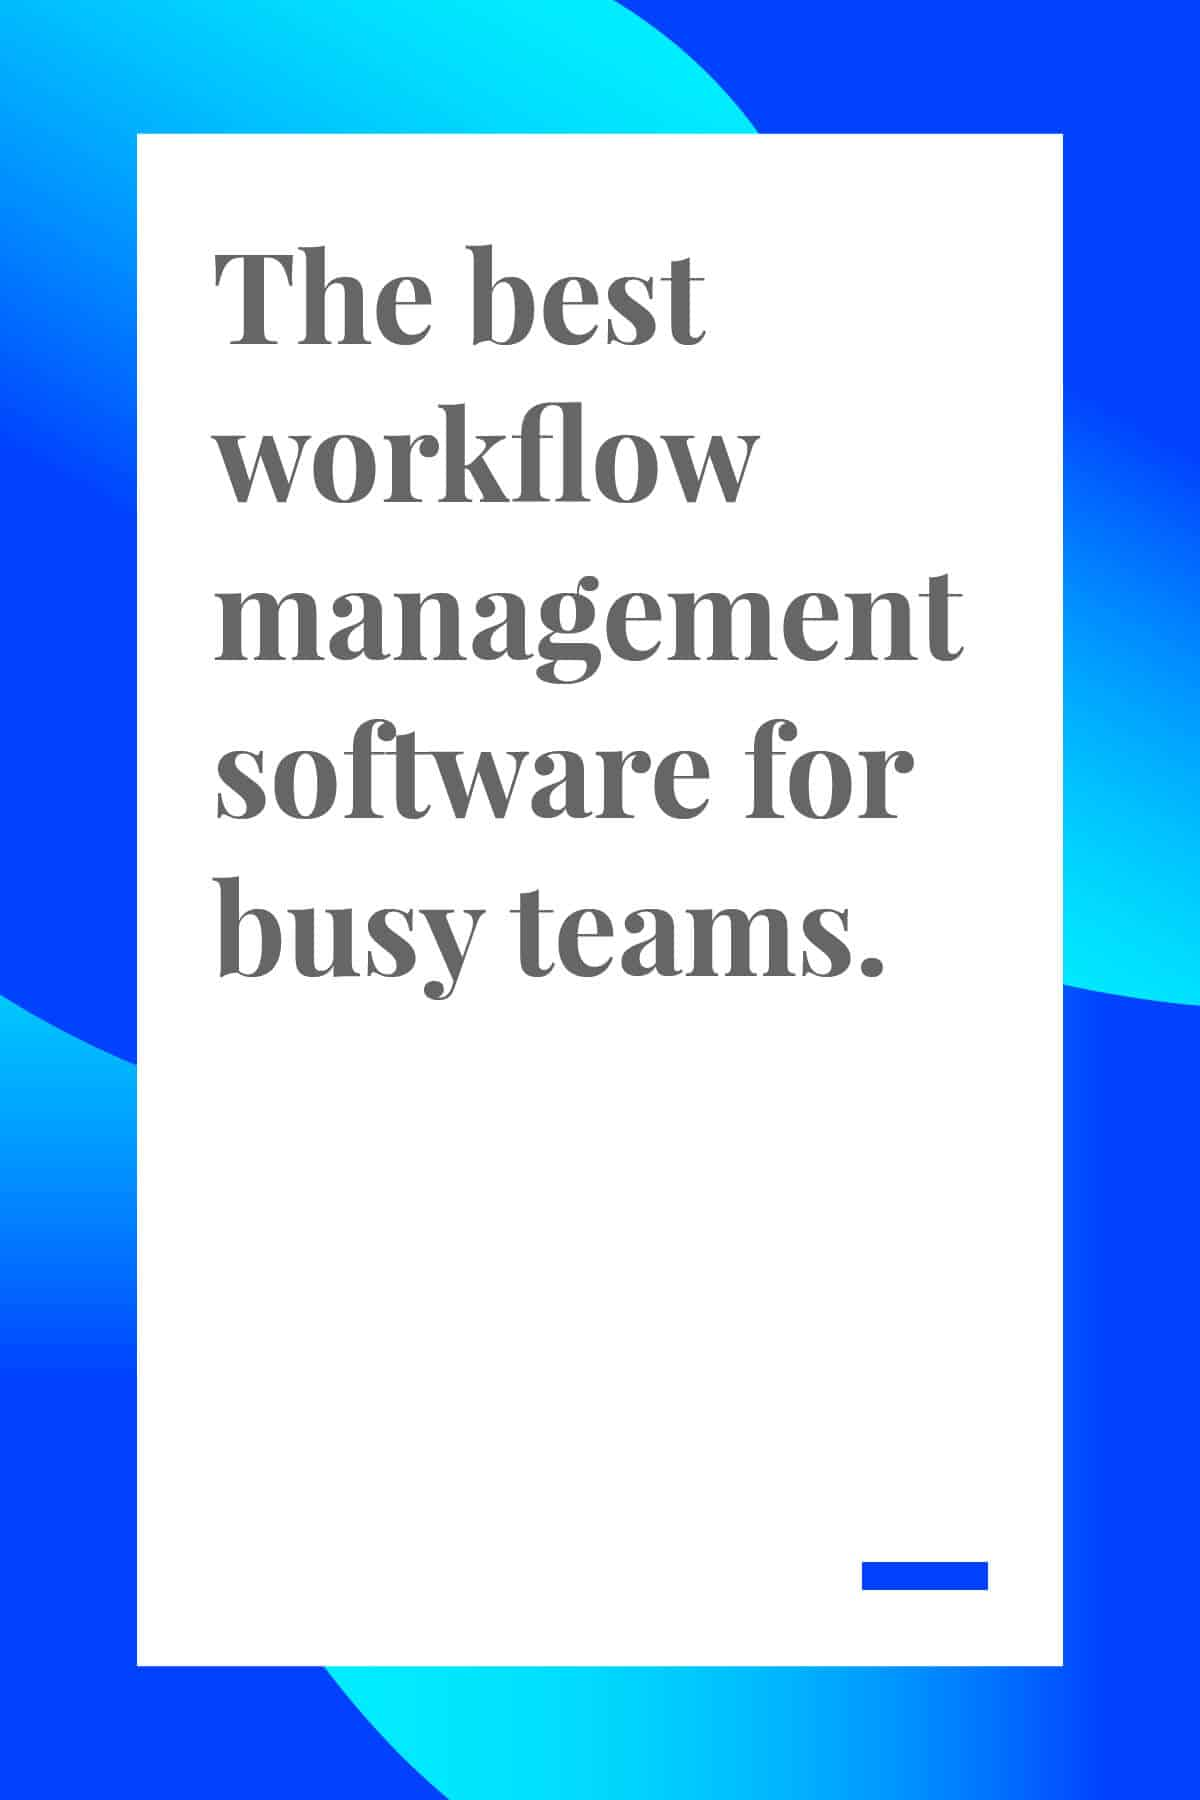 If you're a manager, you know how important it is to have systems in place to help your team. One system you may be missing? Workflow management. Don't worry, this round-up of the best workflow management software will help you manage your team with ease. #workflow #businesstools #smallbusiness